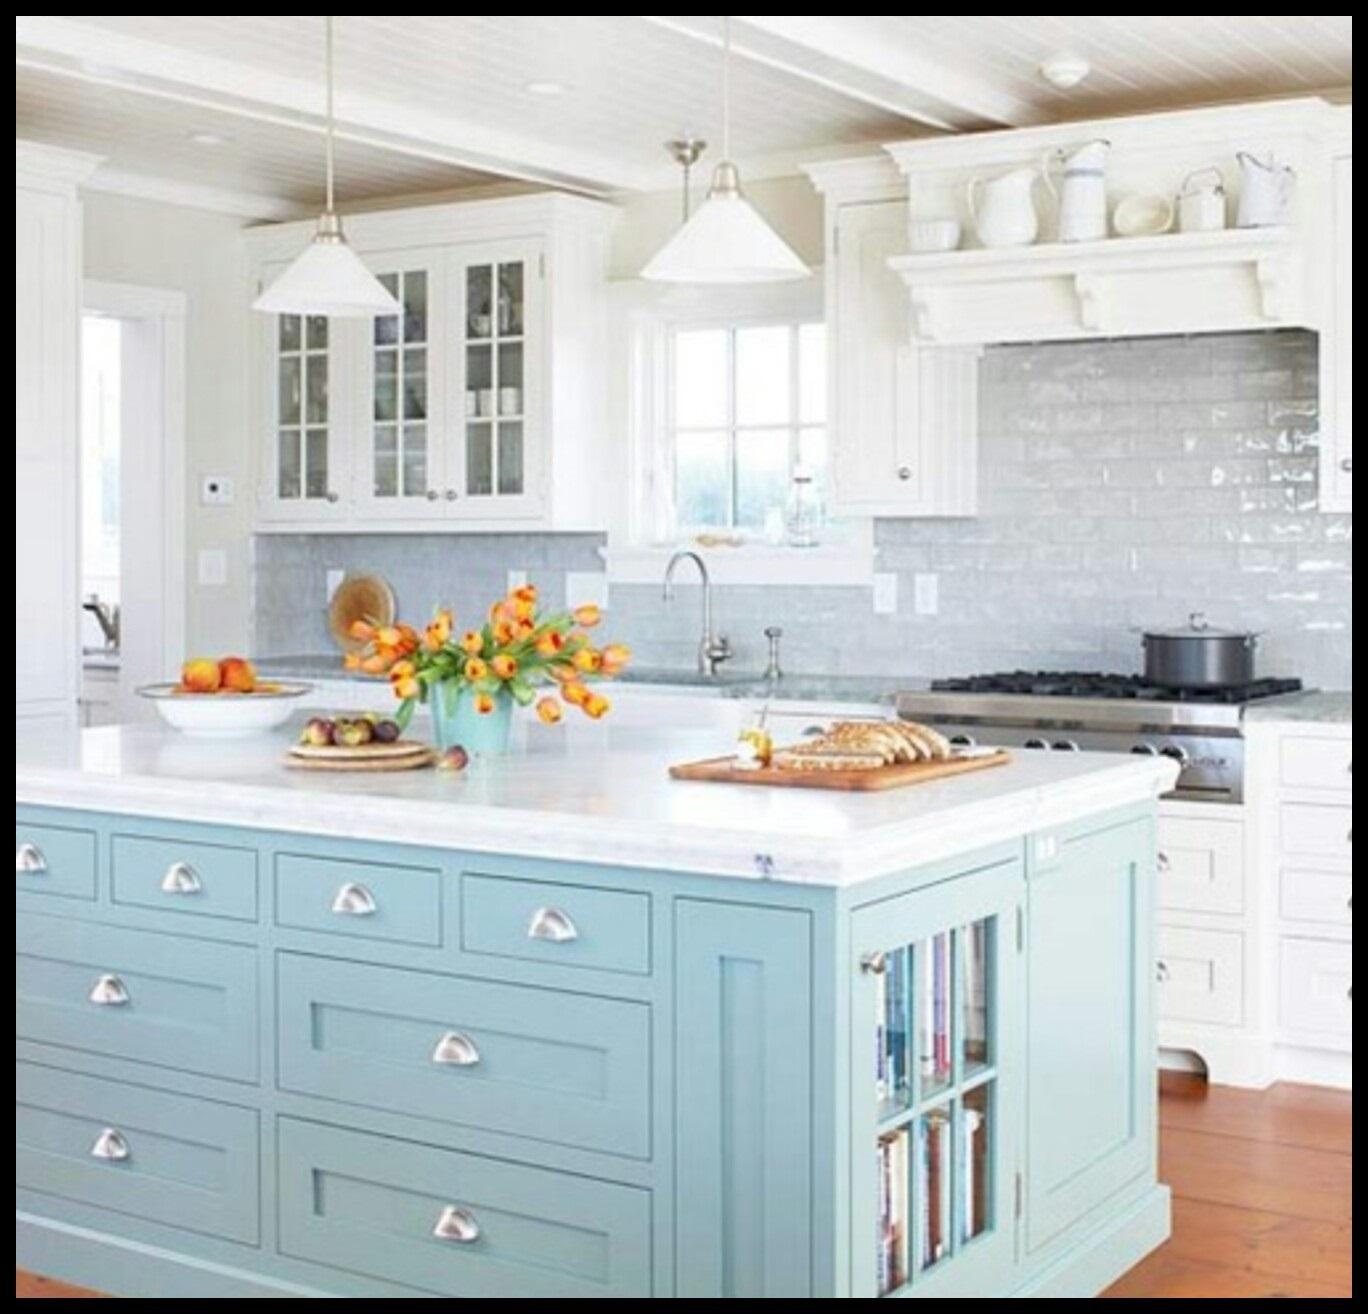 3 Affordable Kitchen Upgrades To Transform Your Gathering Space!